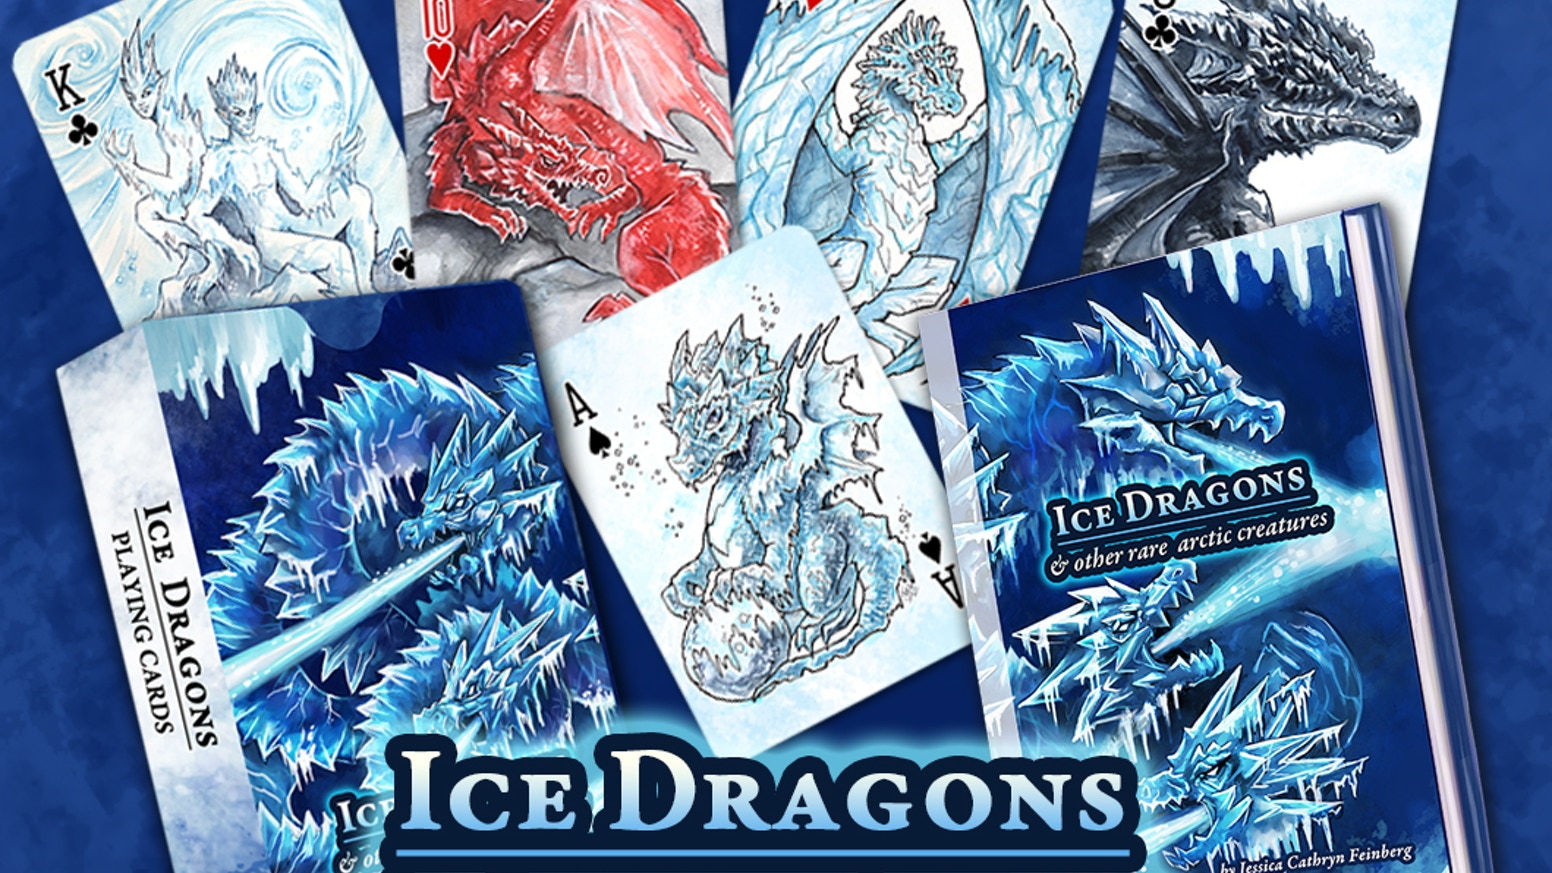 A deck of playing cards, a fully illustrated book, and much more! Featuring Ice Dragons & other rare arctic creatures.